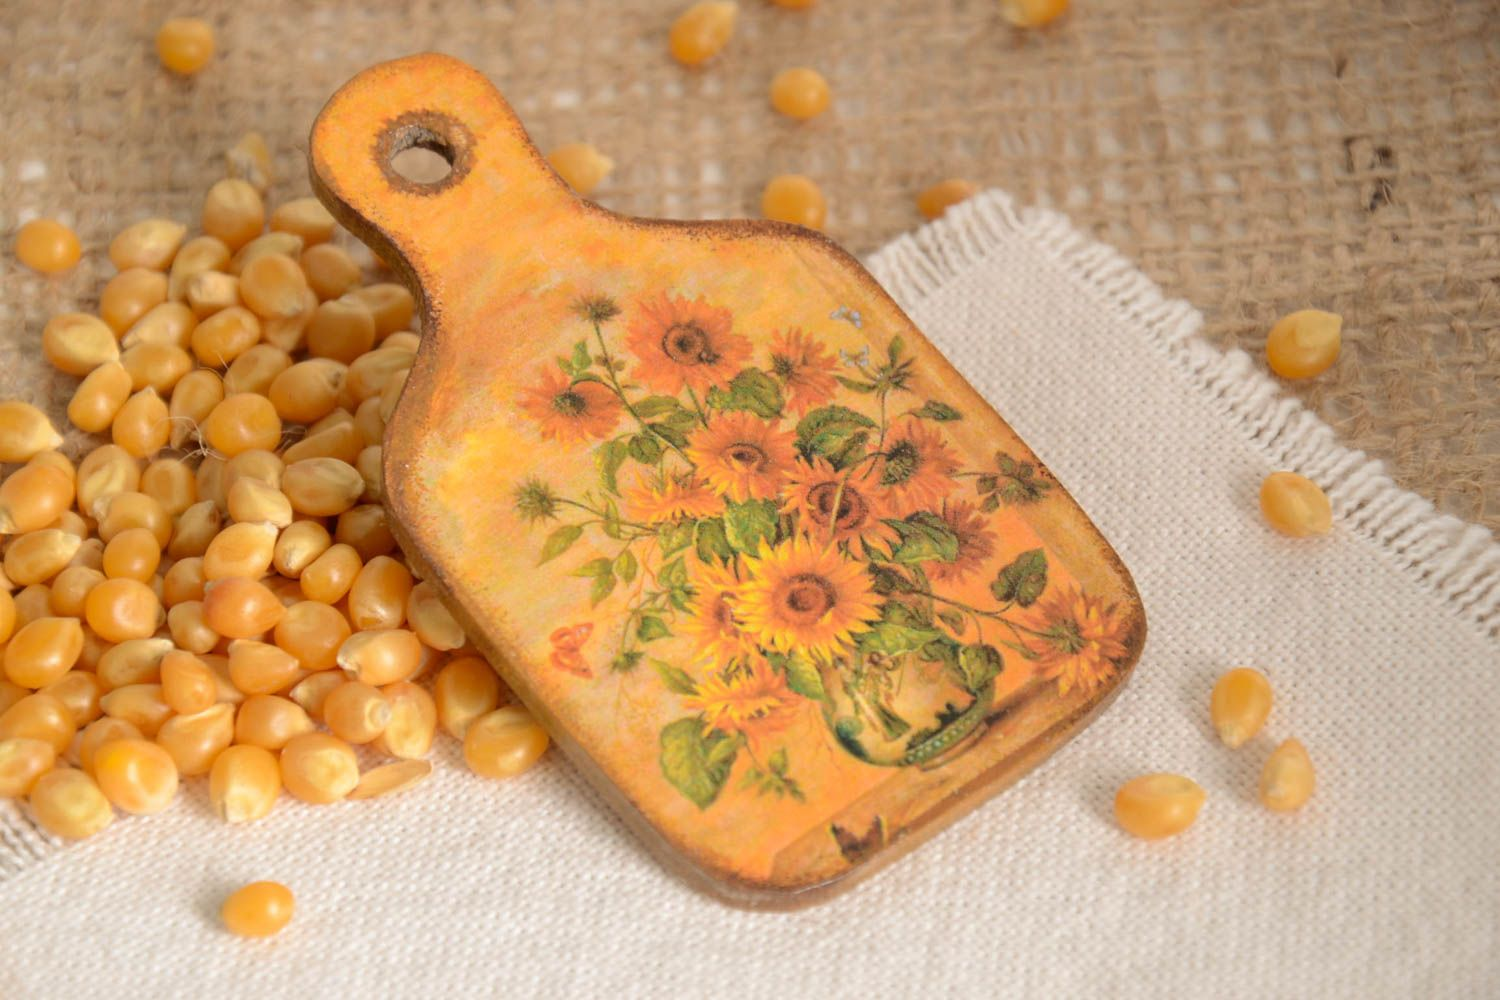 Unusual handmade fridge magnet kitchen supplies home decoration for decor only photo 1